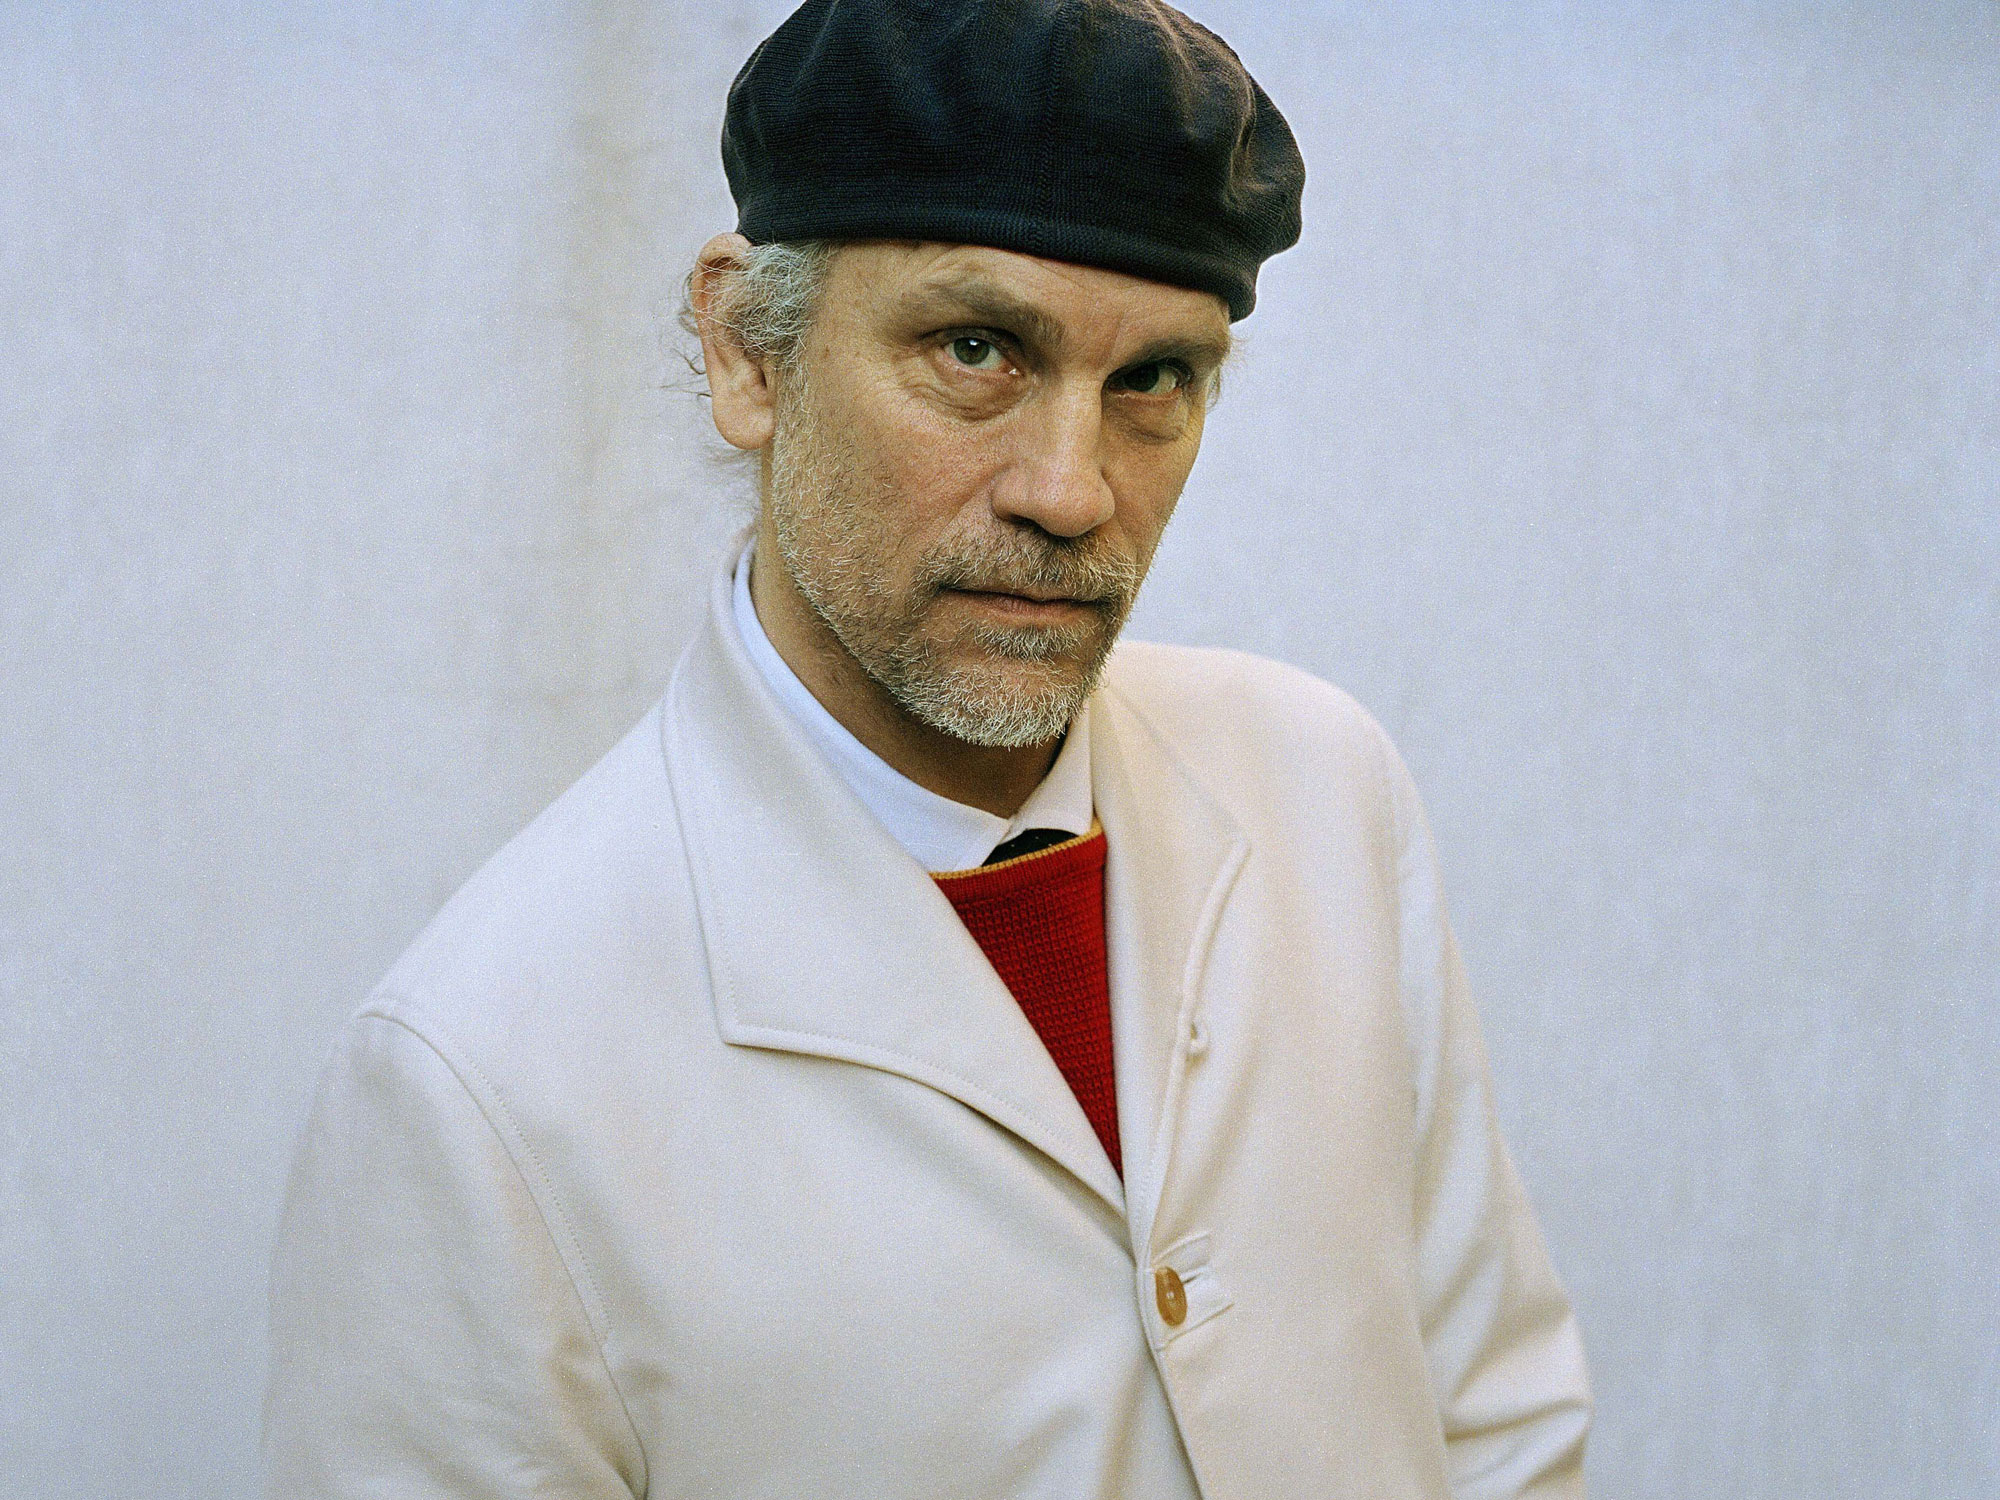 New John Malkovich HD Desktop Wallpaperw Wallpaper